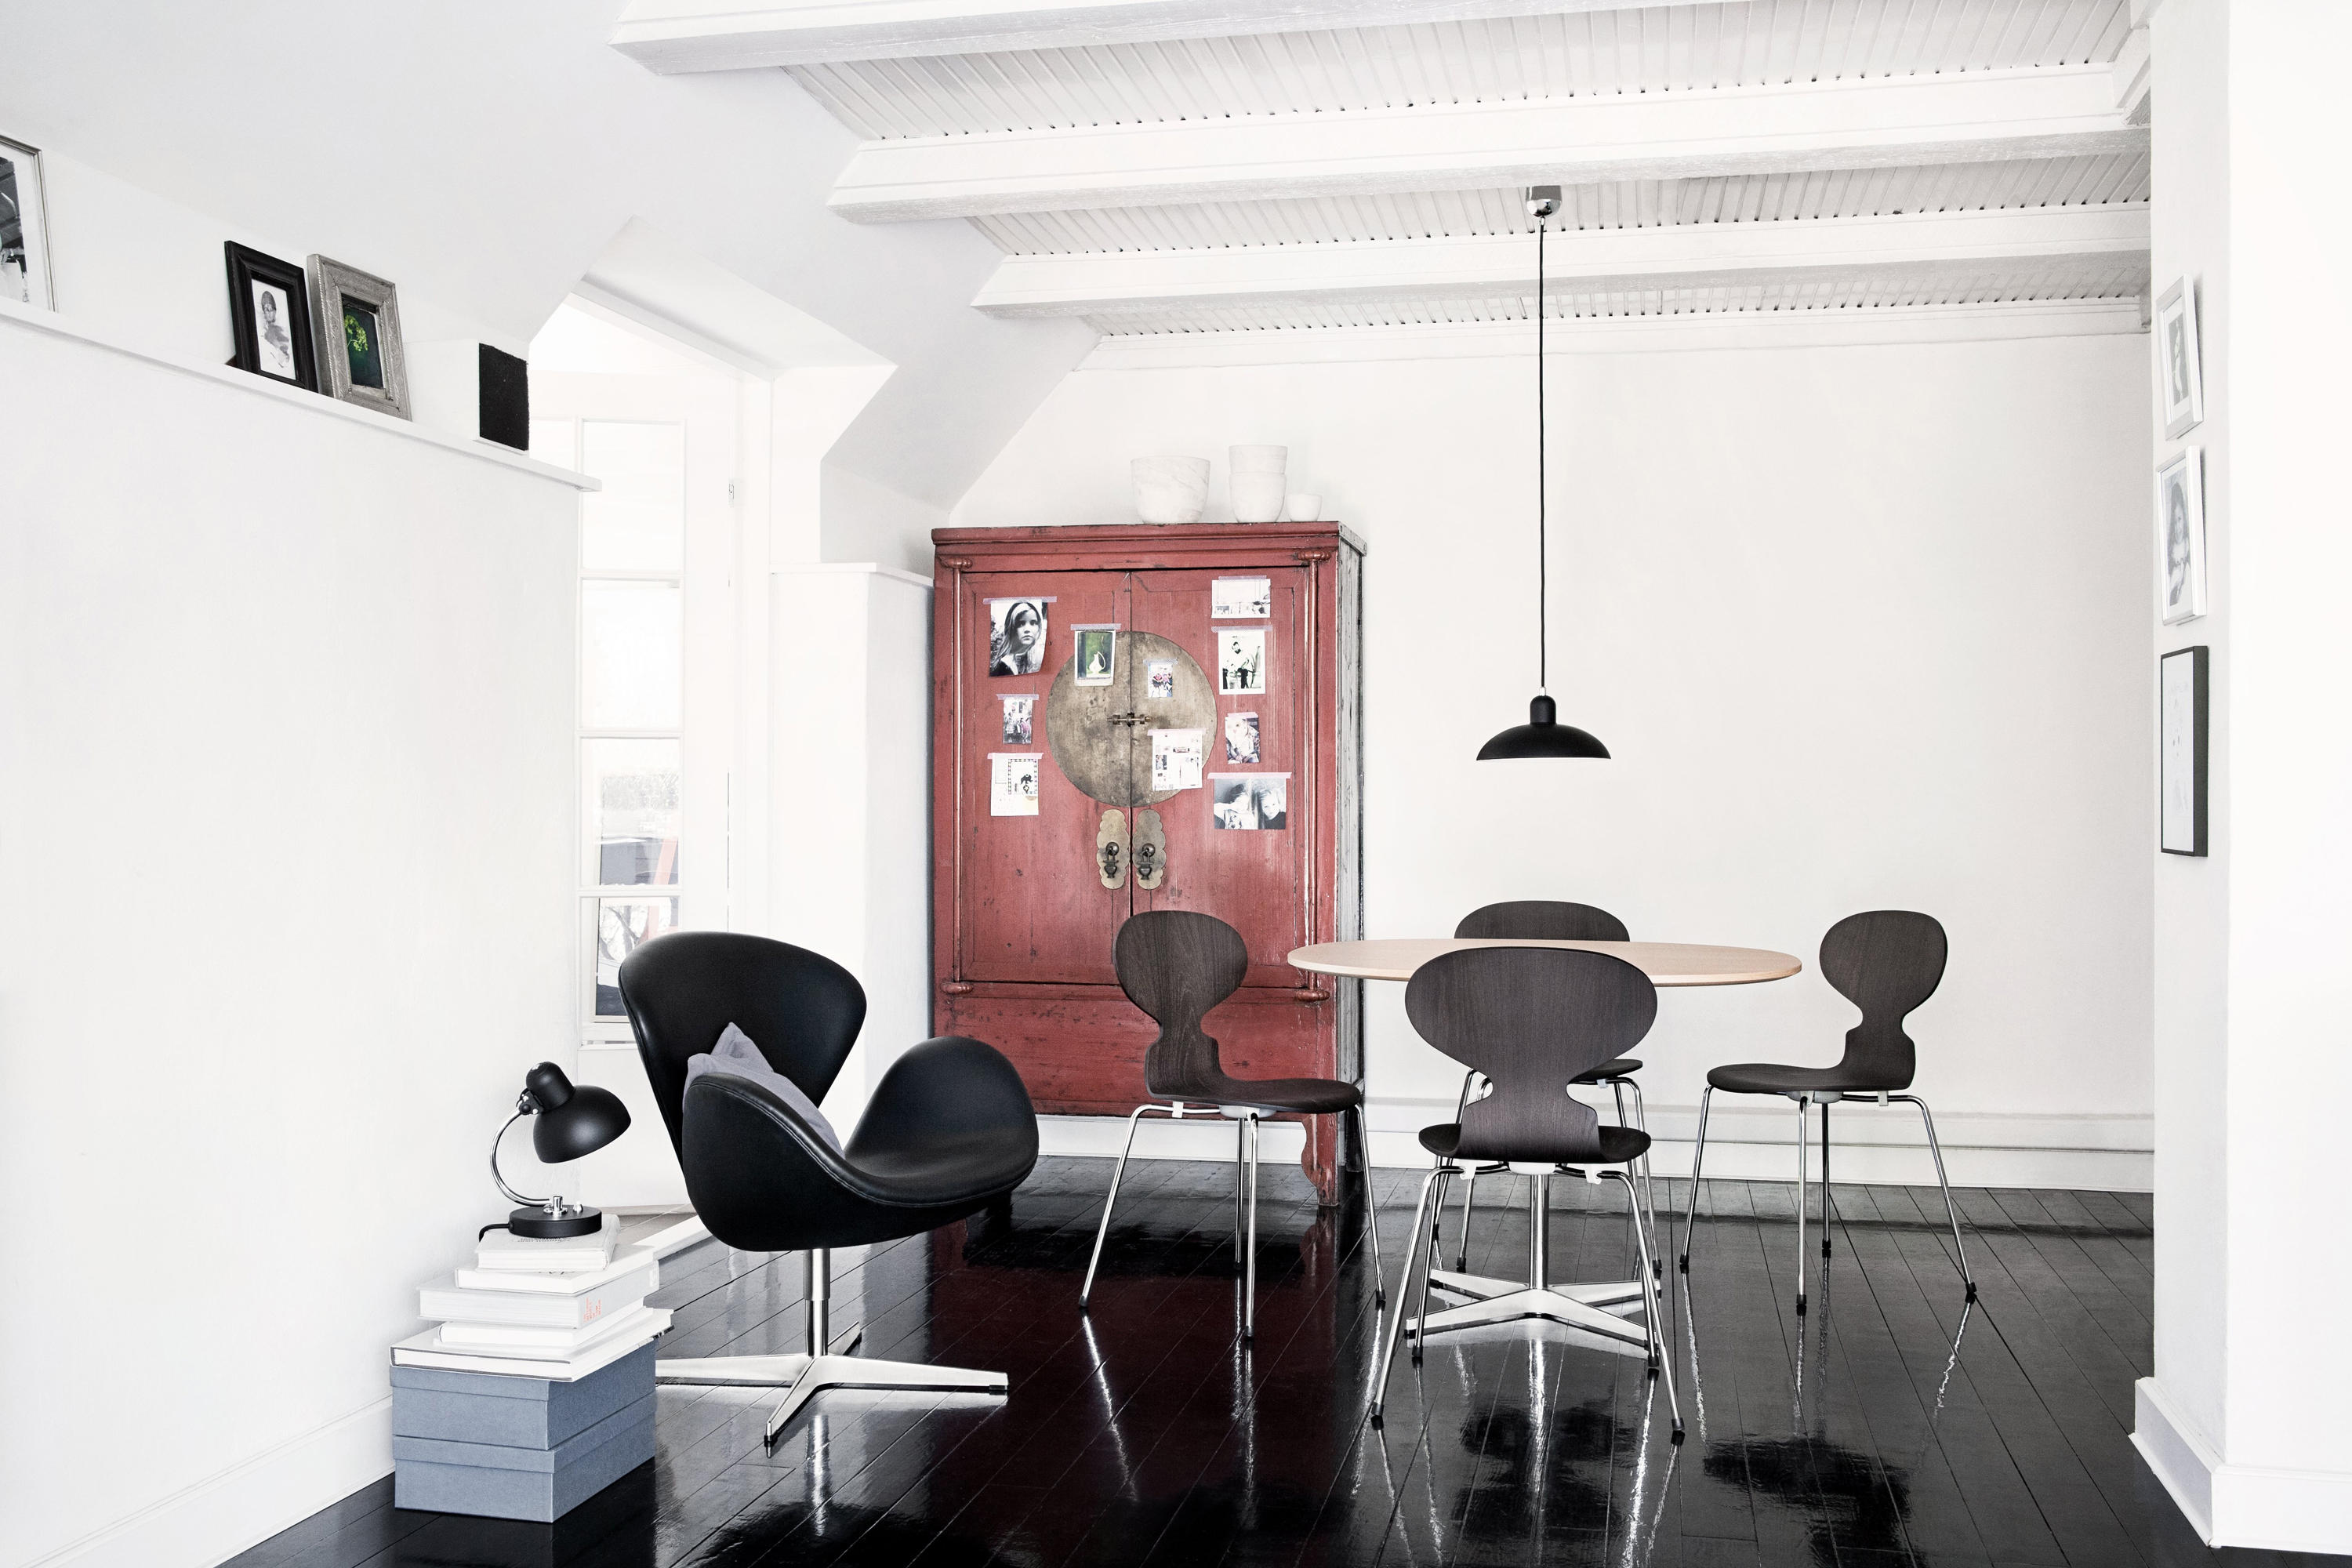 ANT™ 3100 Multipurpose chairs from Fritz Hansen